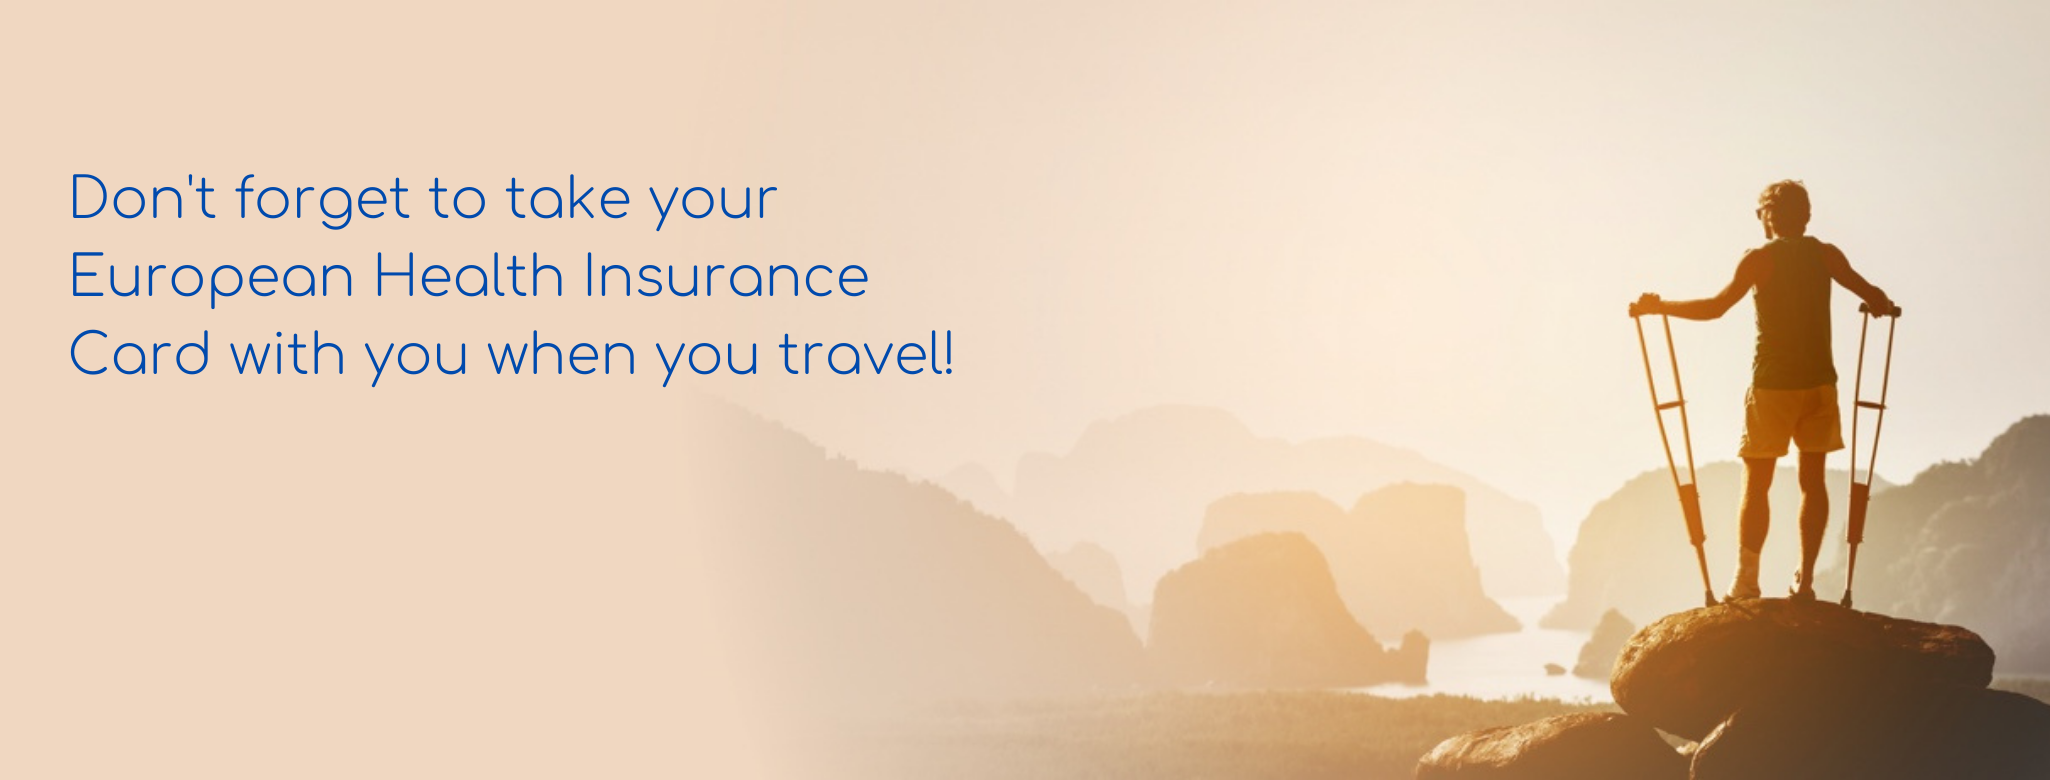 Don't forget to take your European Health Insurance Card with you when you travel!